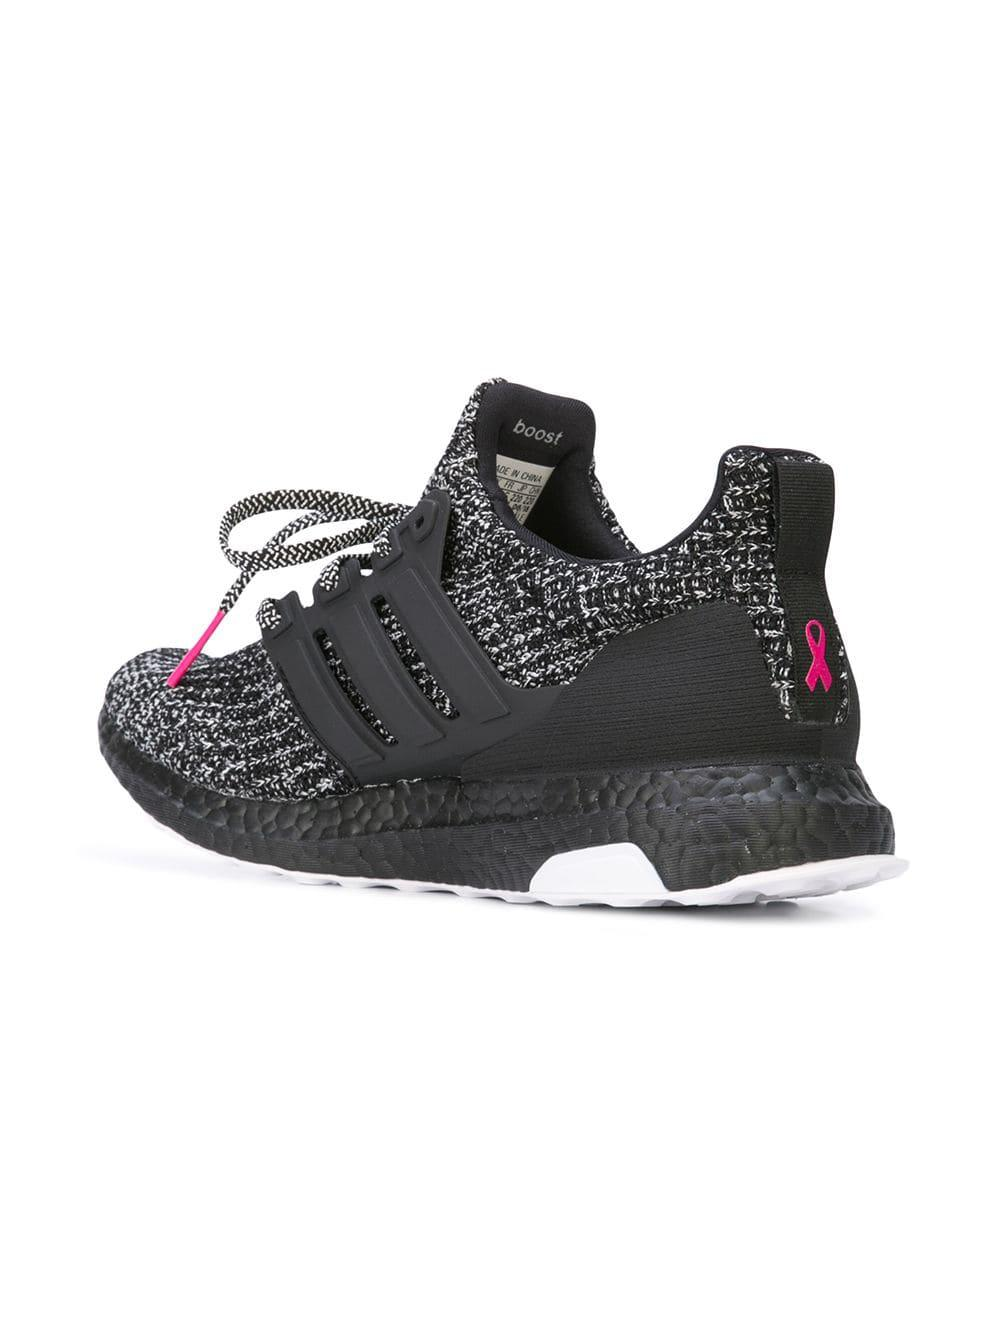 best service cee4c e5fa7 Adidas Black Ultraboost 4.0 'breast Cancer Awareness' Sneakers for men